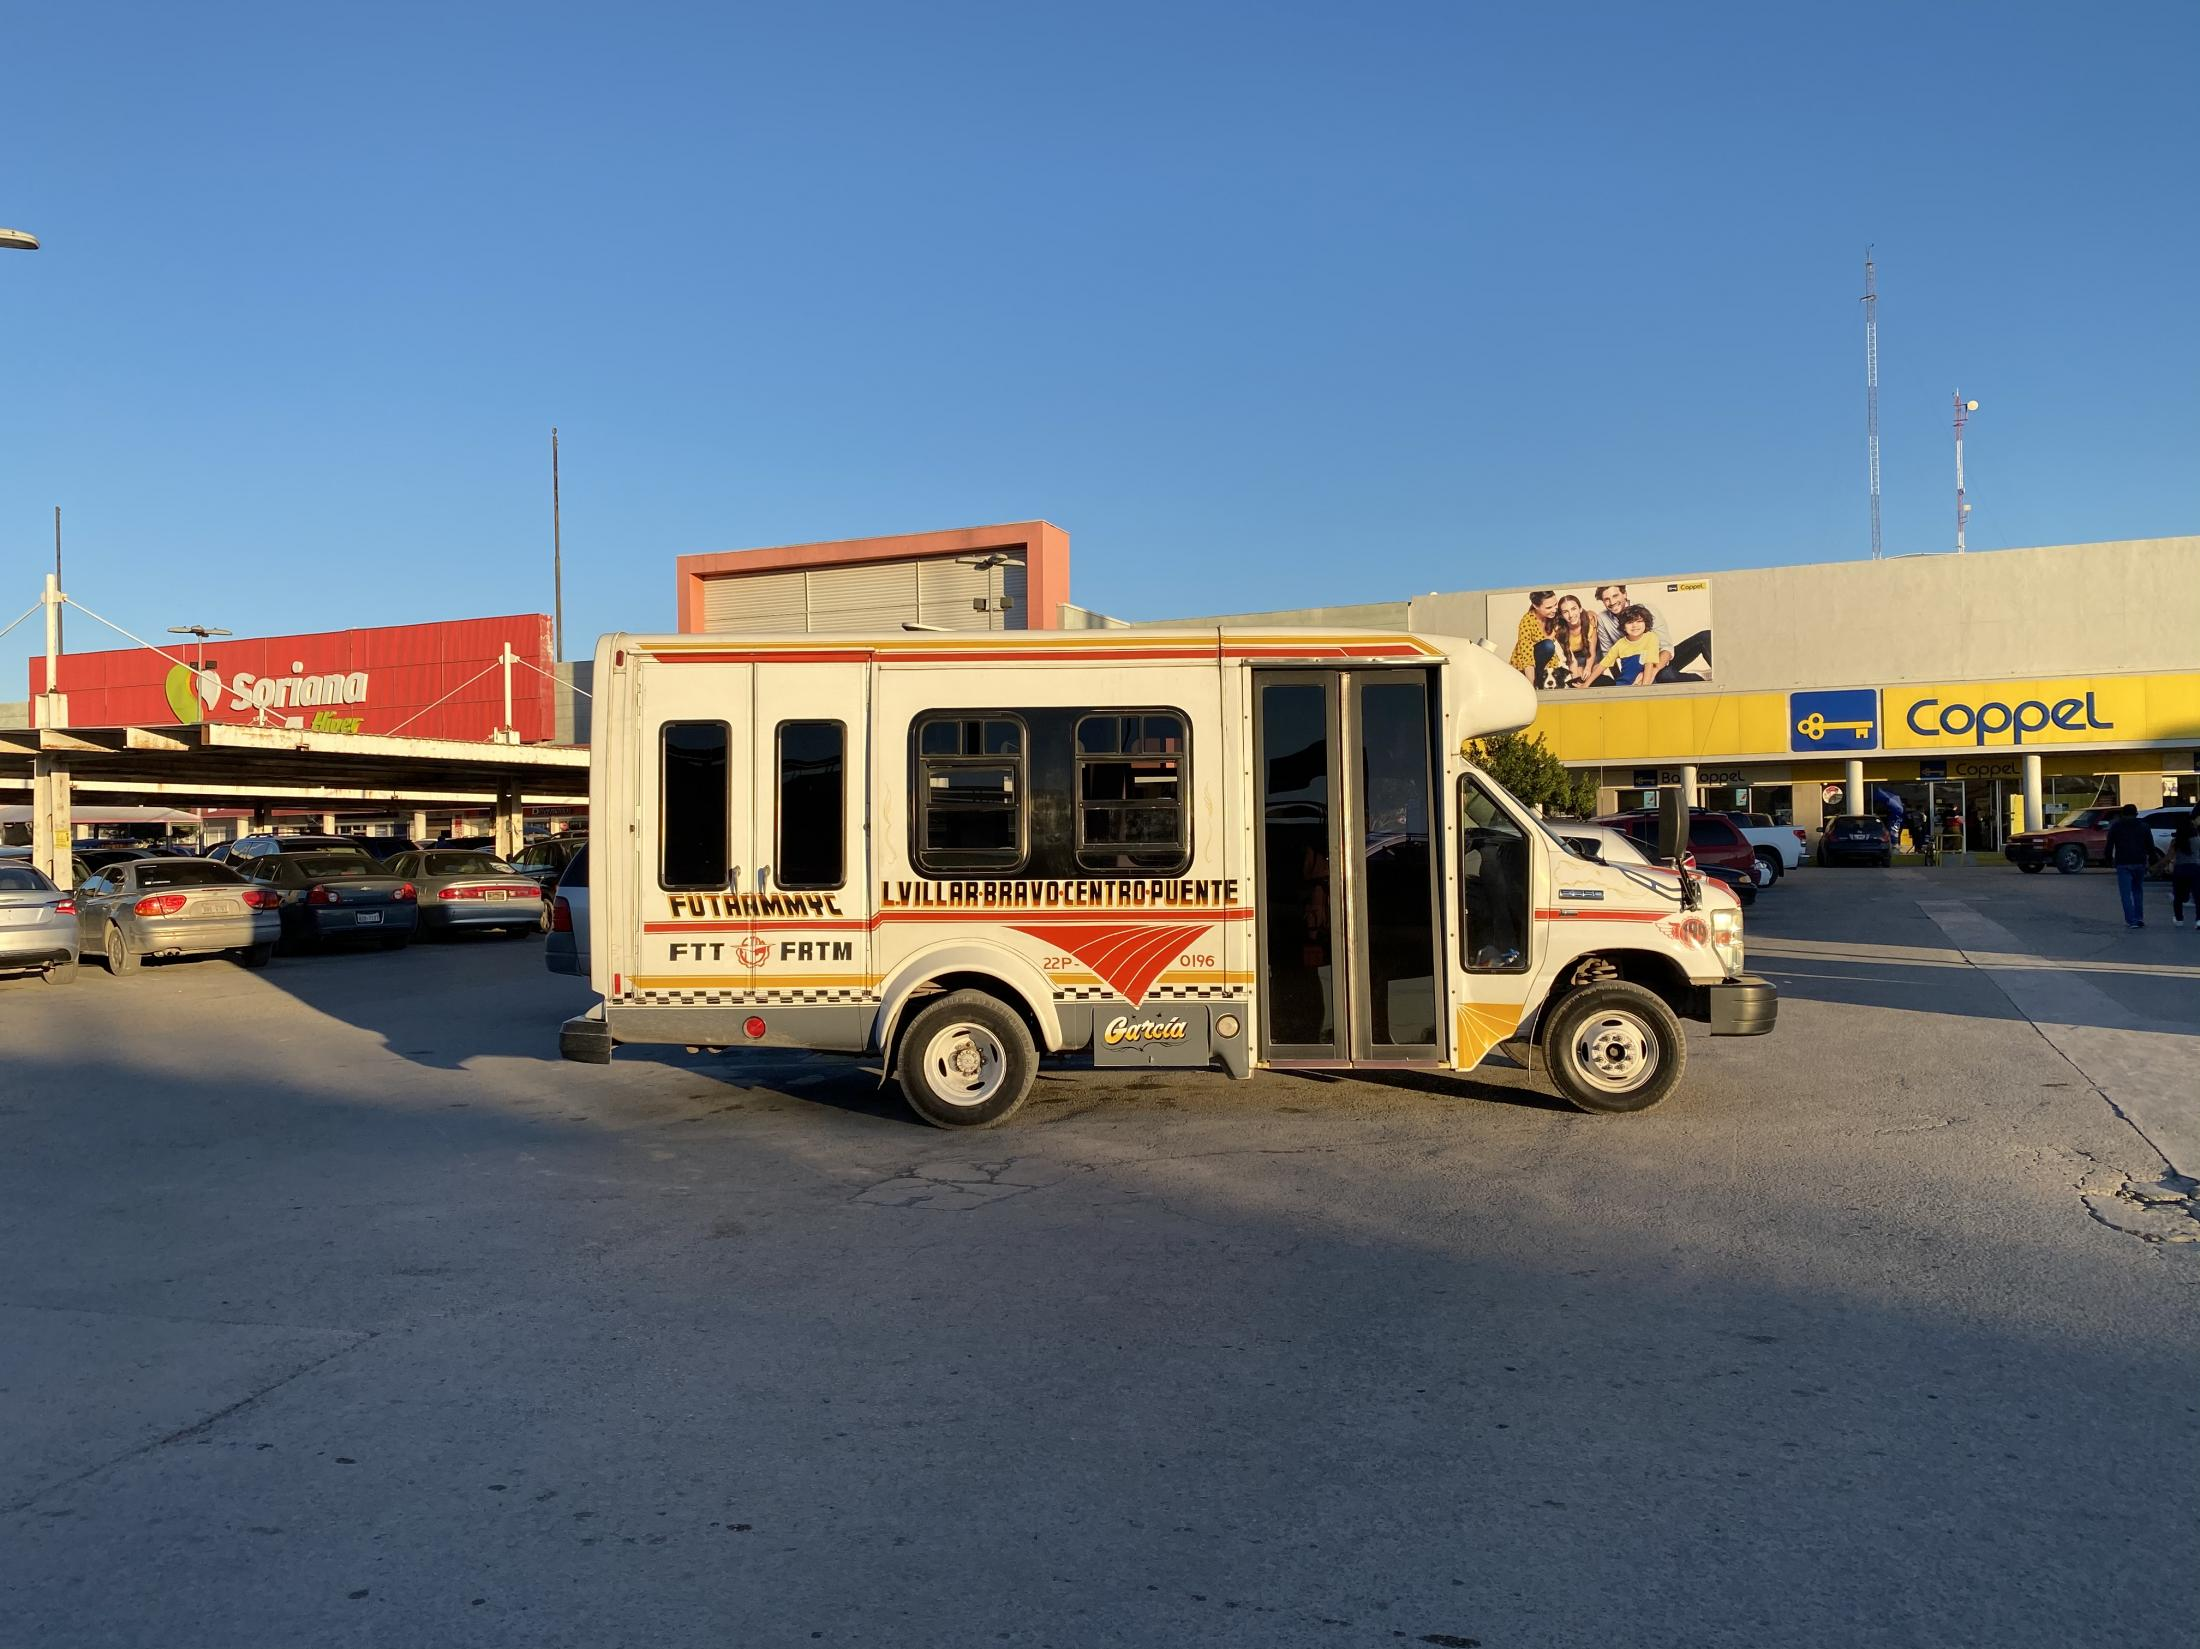 Matamoros, Tamaulipas, México. 2020. A typical public bus from Mexico. My mother and I had gone to eat outside after being unable to leave a hospital for several days in order to takecare of my sick grandmother.